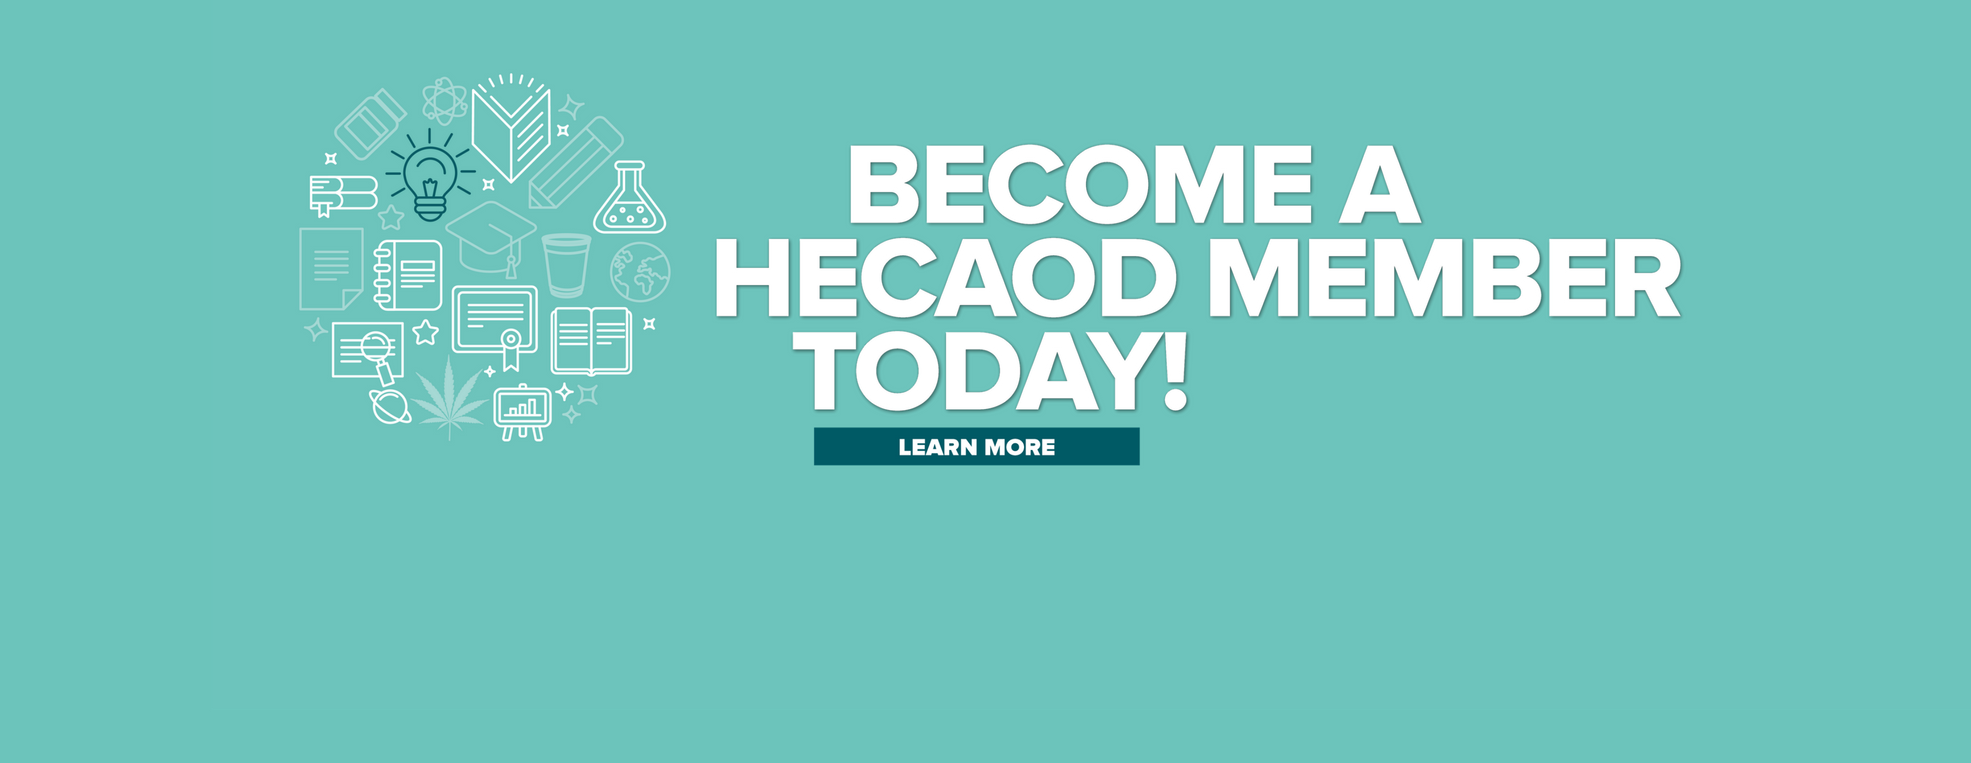 Become a HECAOD Member Today